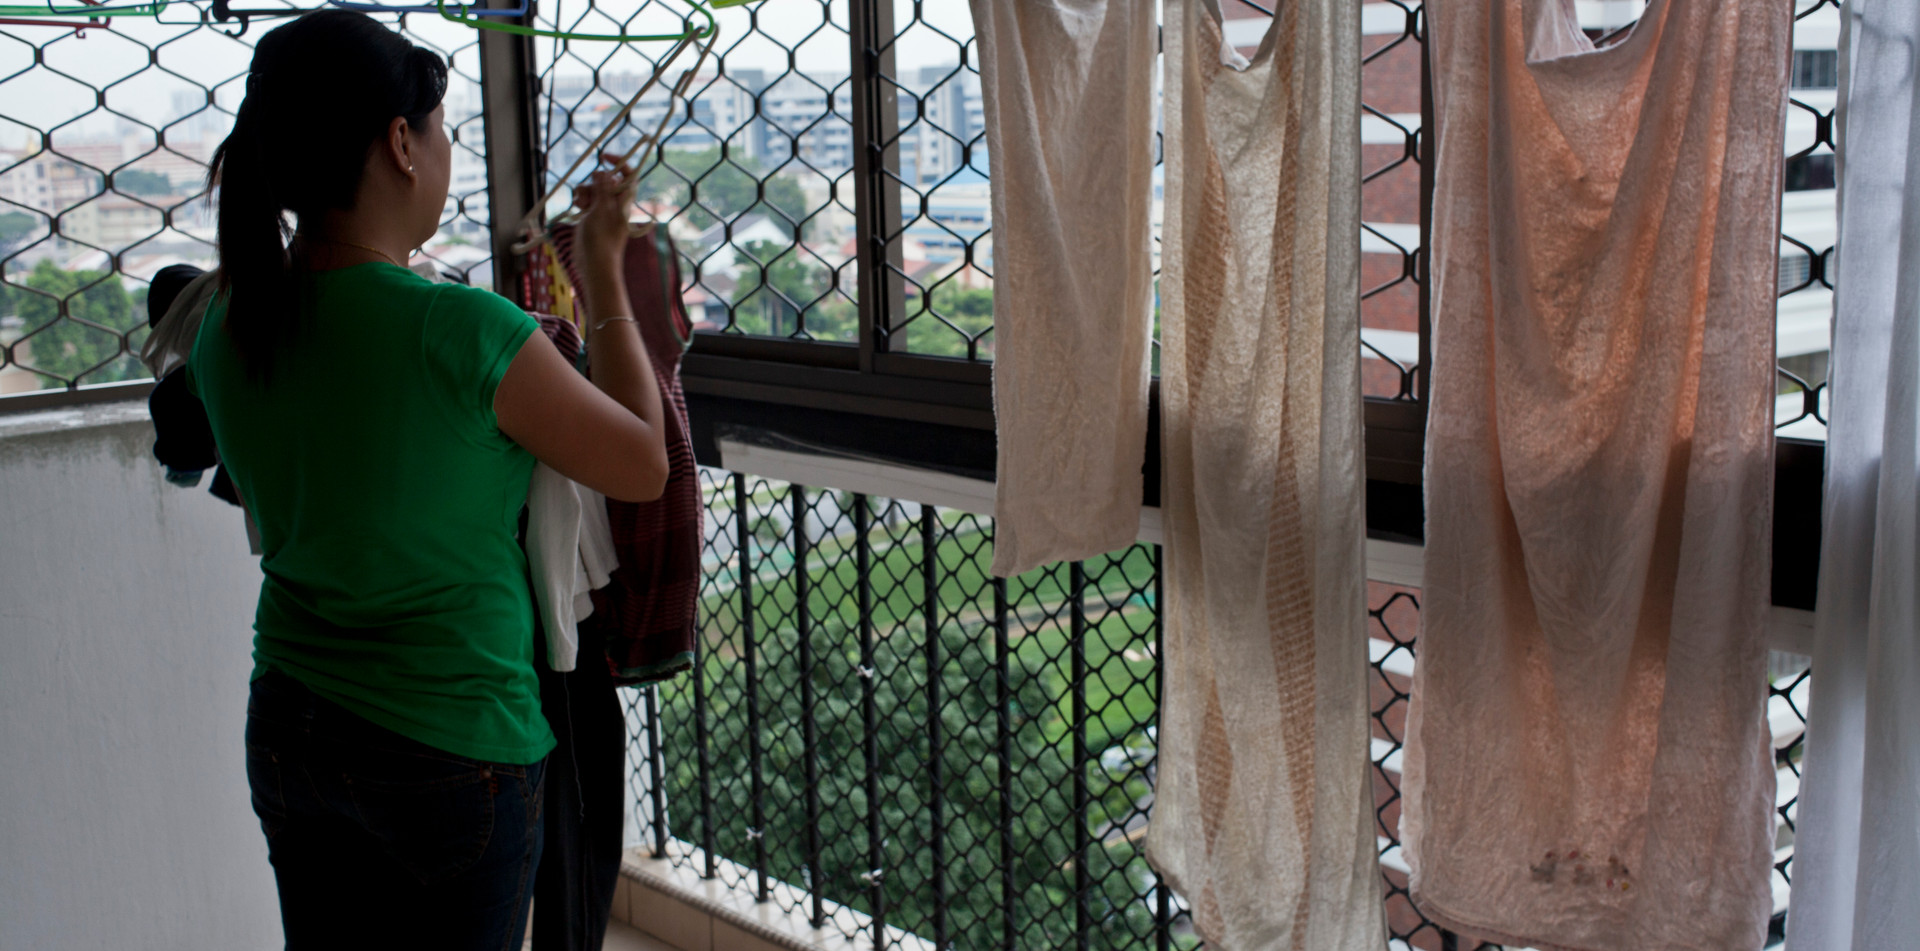 Migrant domestic worker fom Philippines working in Singapore